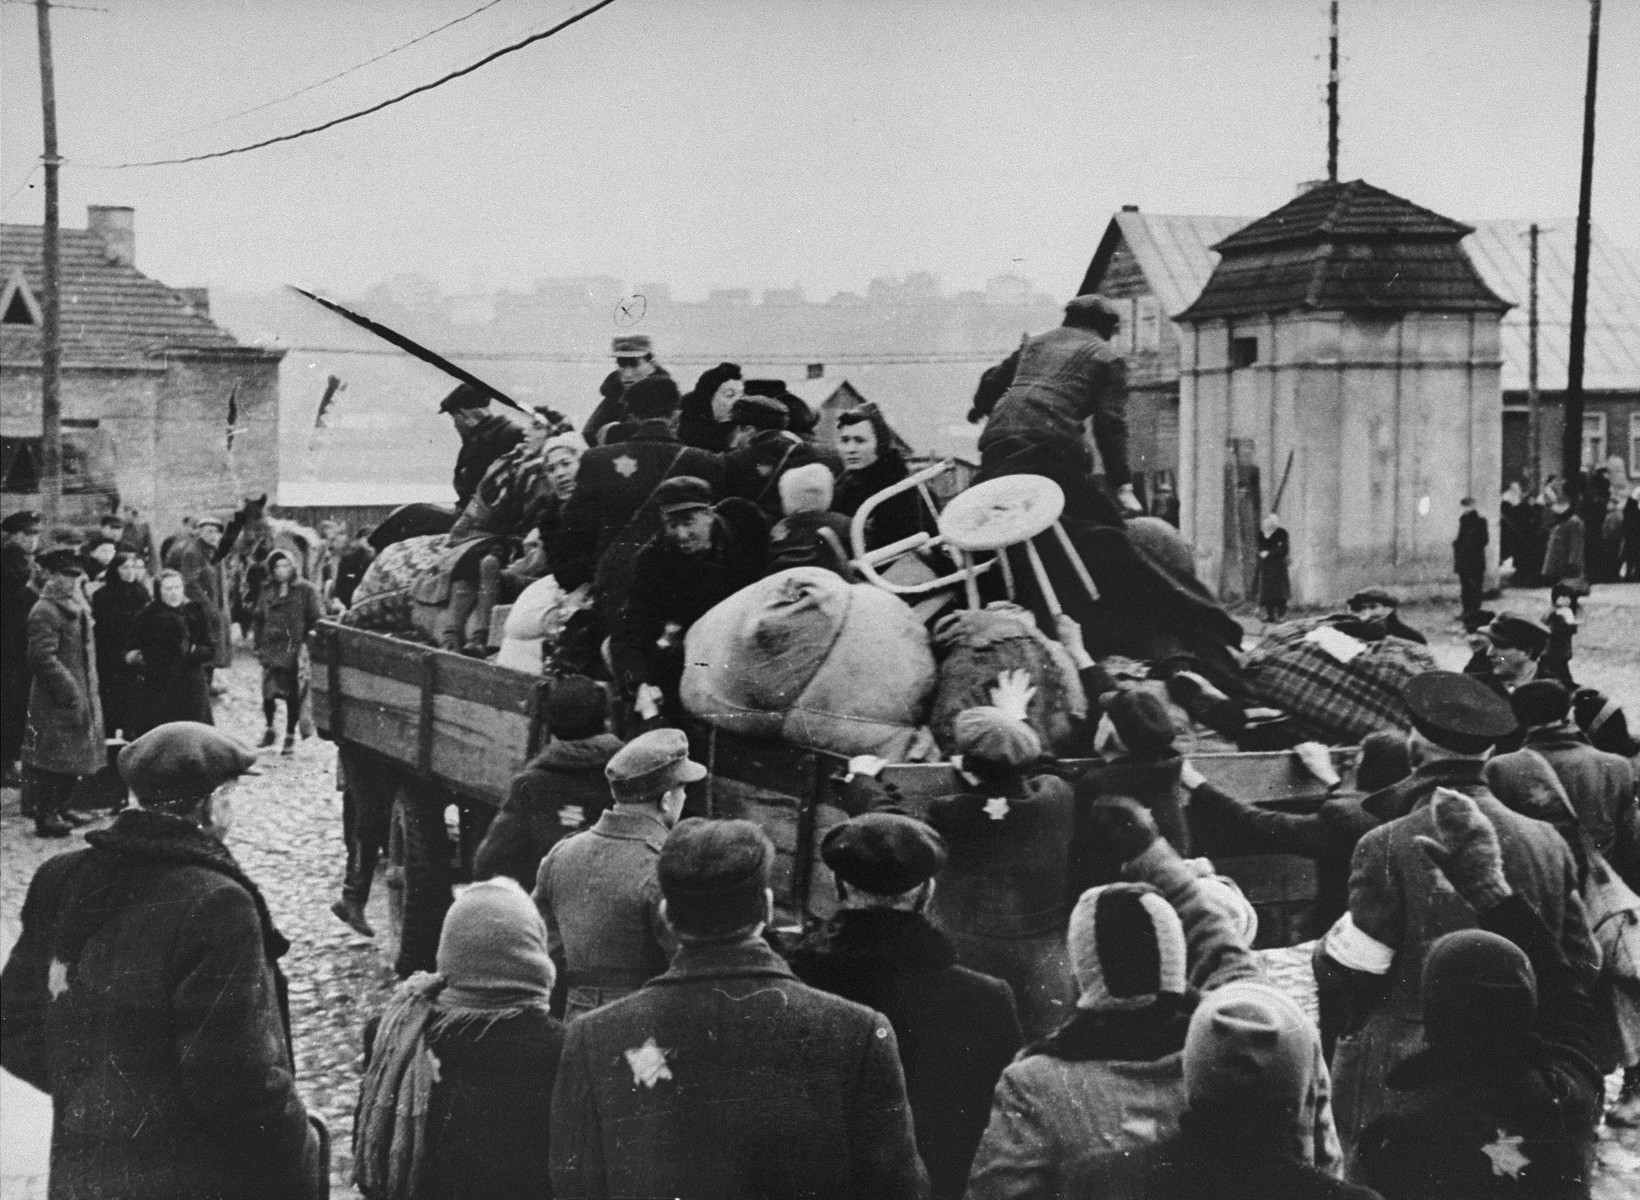 Jews in the Kovno ghetto are boarded onto trucks during a deportation action to either a work camp near Kovno or Estonia.  These Jews were sent to the Koramei concentration camp in Estonia.  Among those pictured on the truck are Moishe Fishel, Chana, Jankel, Esther and Chaim Miszelski; and Eli, Sima and Boris Rochelson.